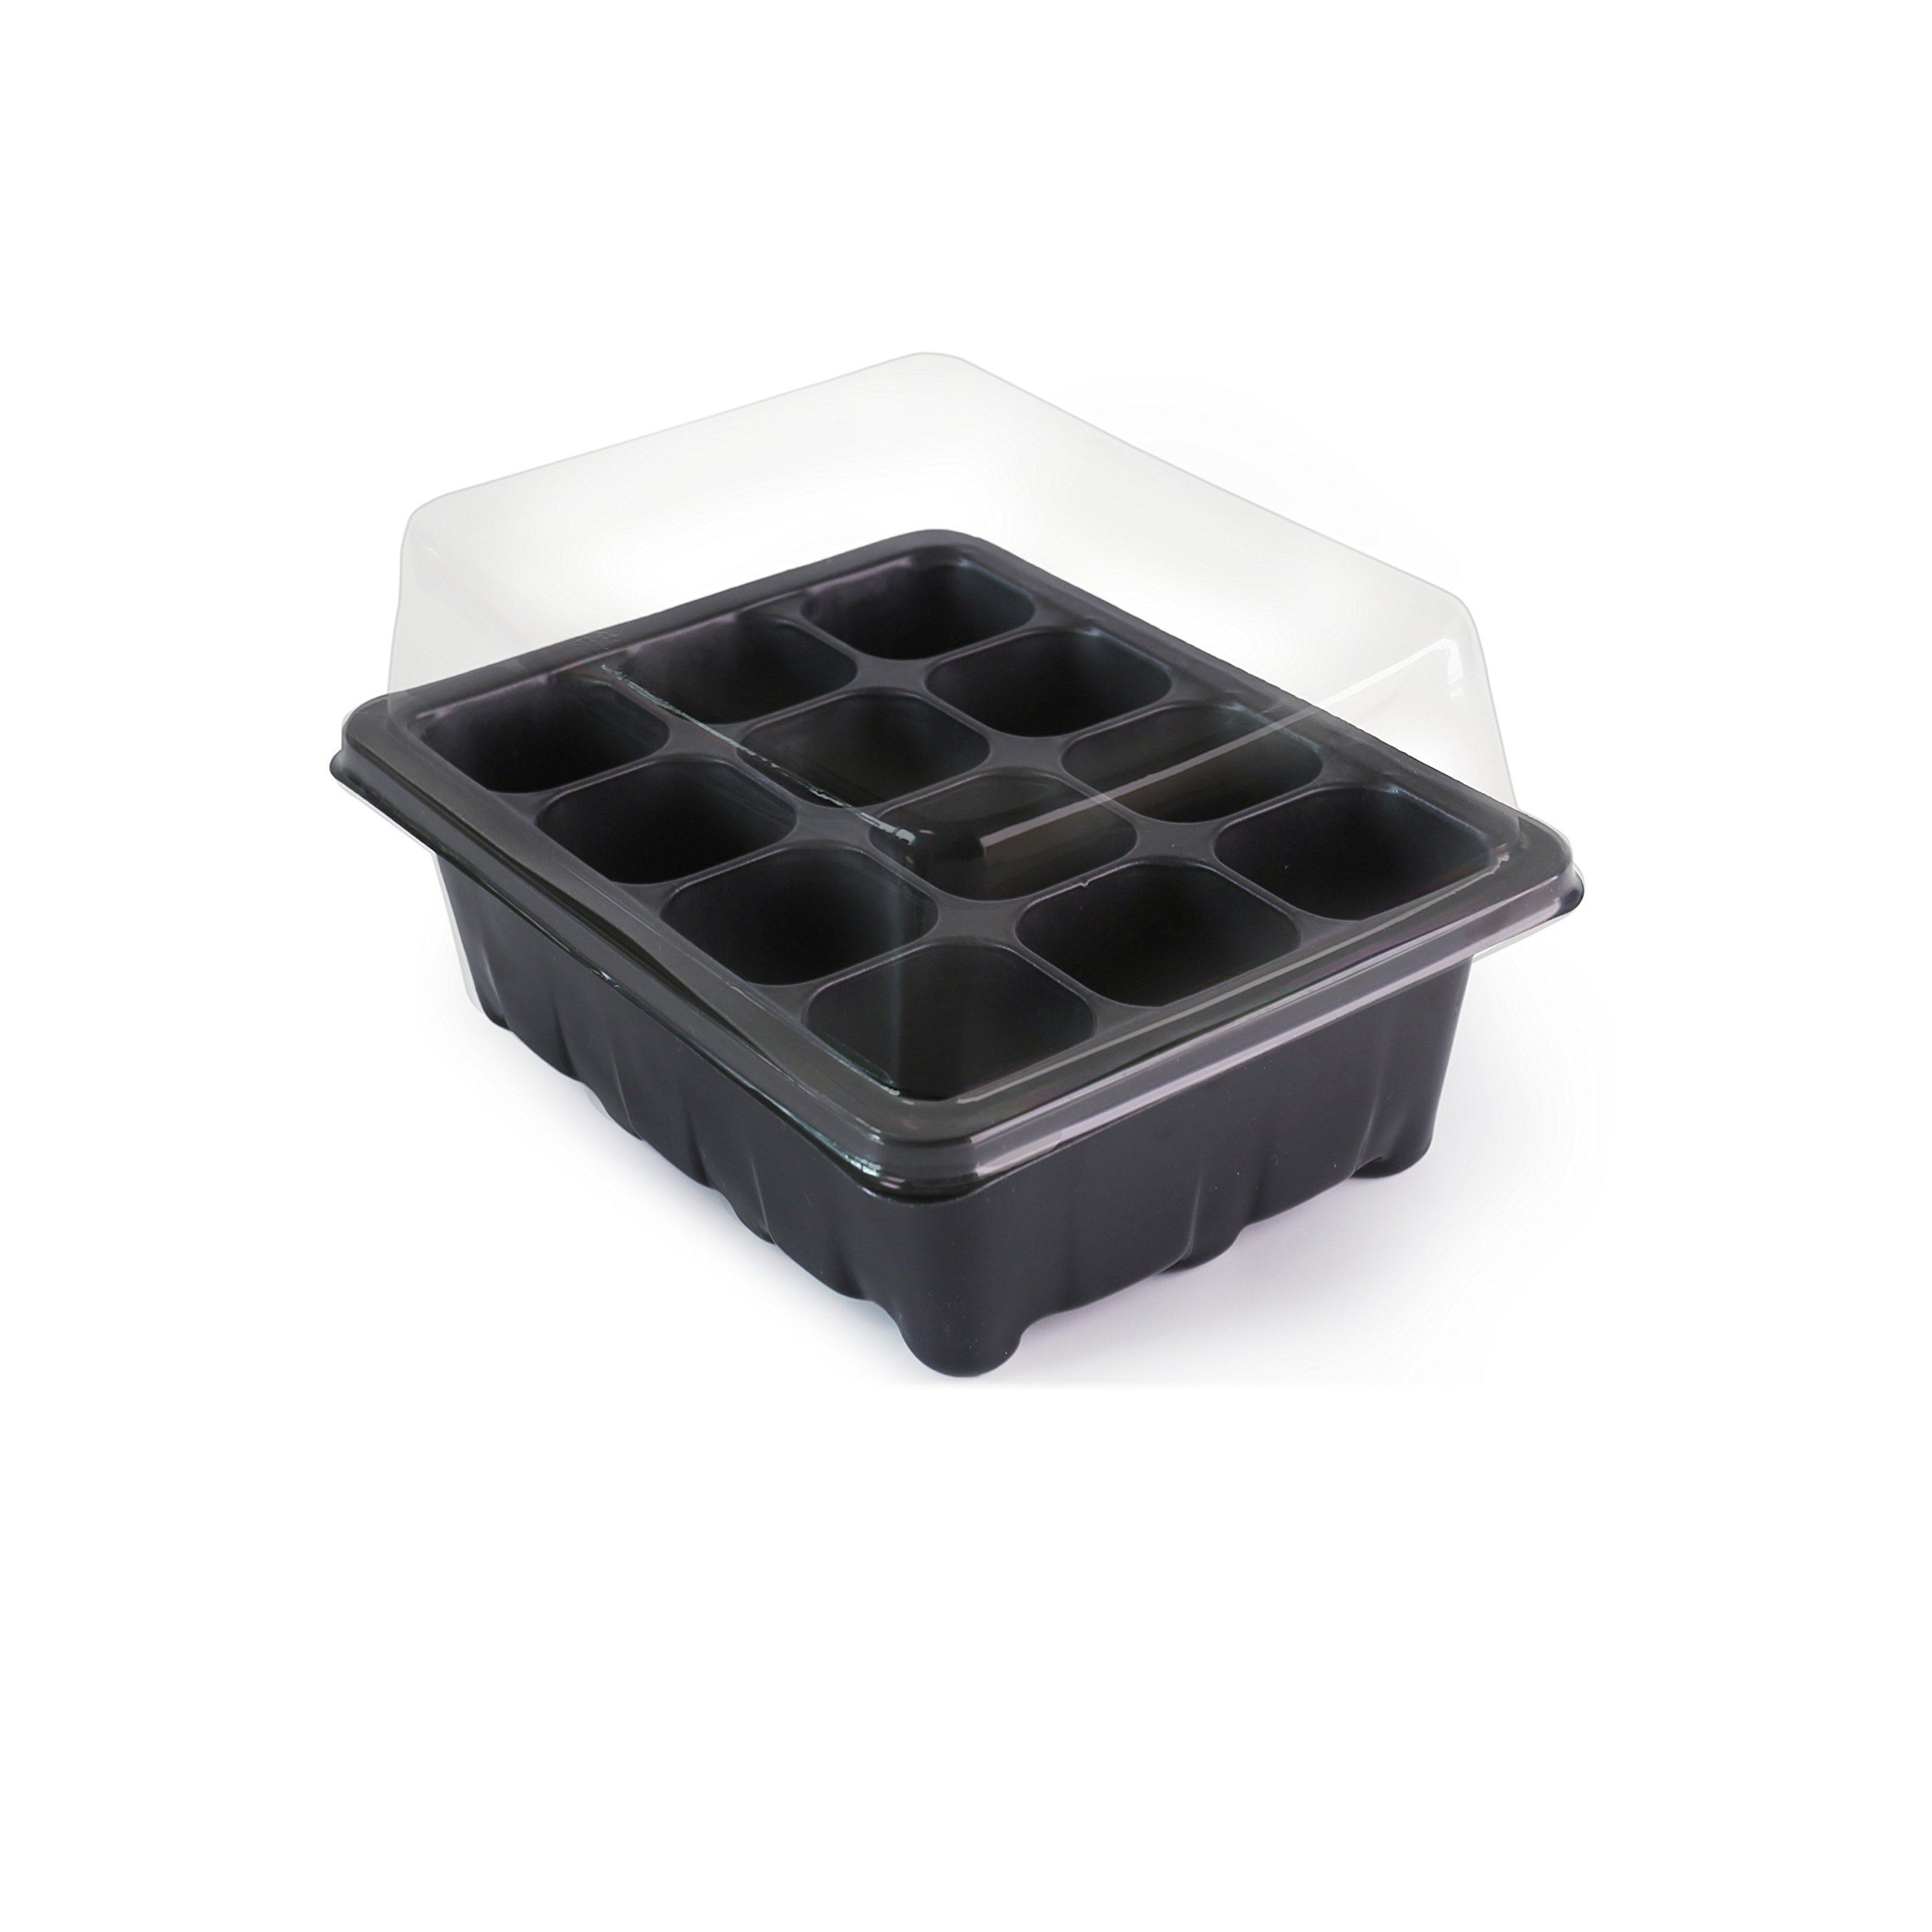 LOVEDAY 12 Grow Trays with Humidity Dome and Cell Insert - Mini Propagator for Seed Starting and Growing Healthy Plants - Durable, Reusable and Recyclable – 10 Pack – 120 Cells (12 Grow Trays)